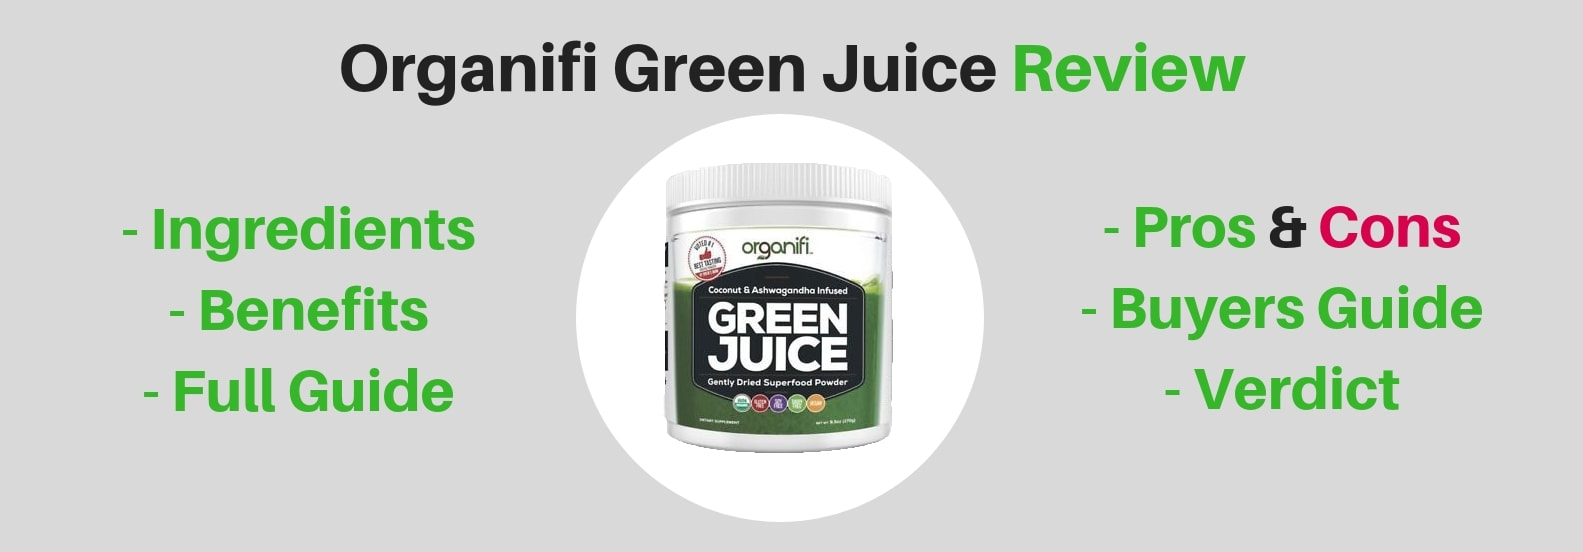 Image of Organifi green juice